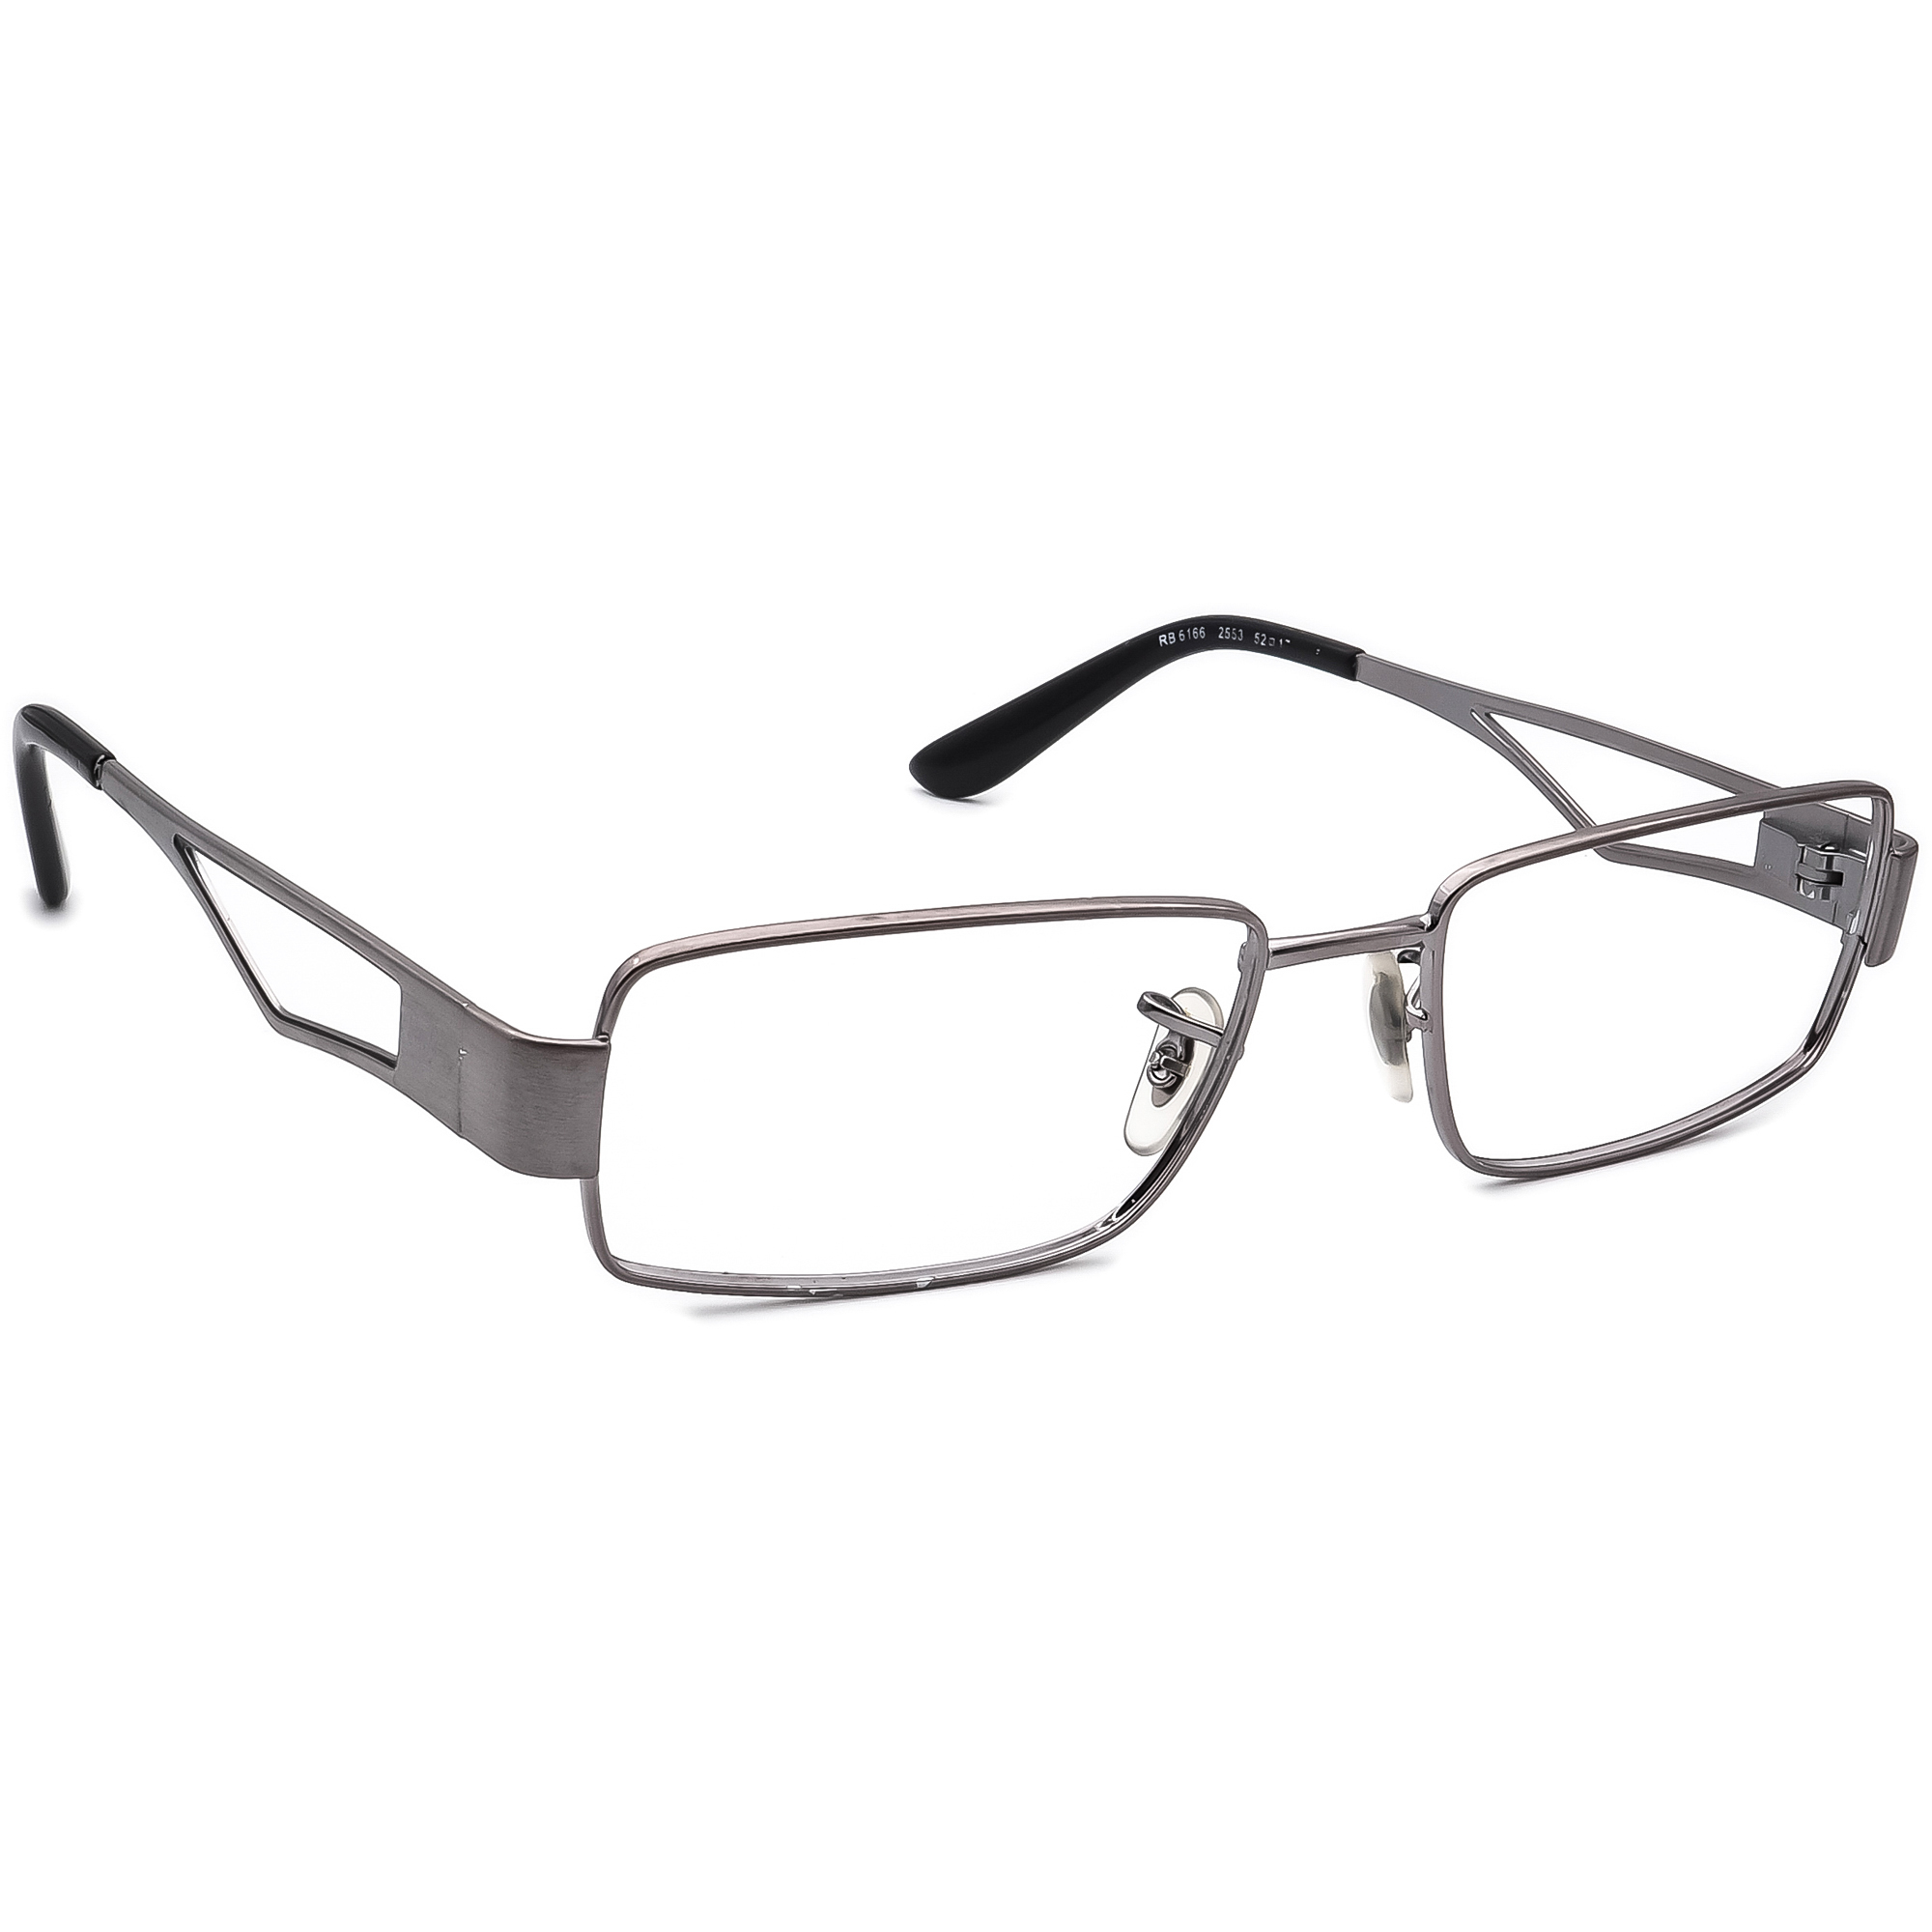 Ray Ban Men's Eyeglasses RB 6166 2553 Gray Rectangular Metal Frame 52[]17 135